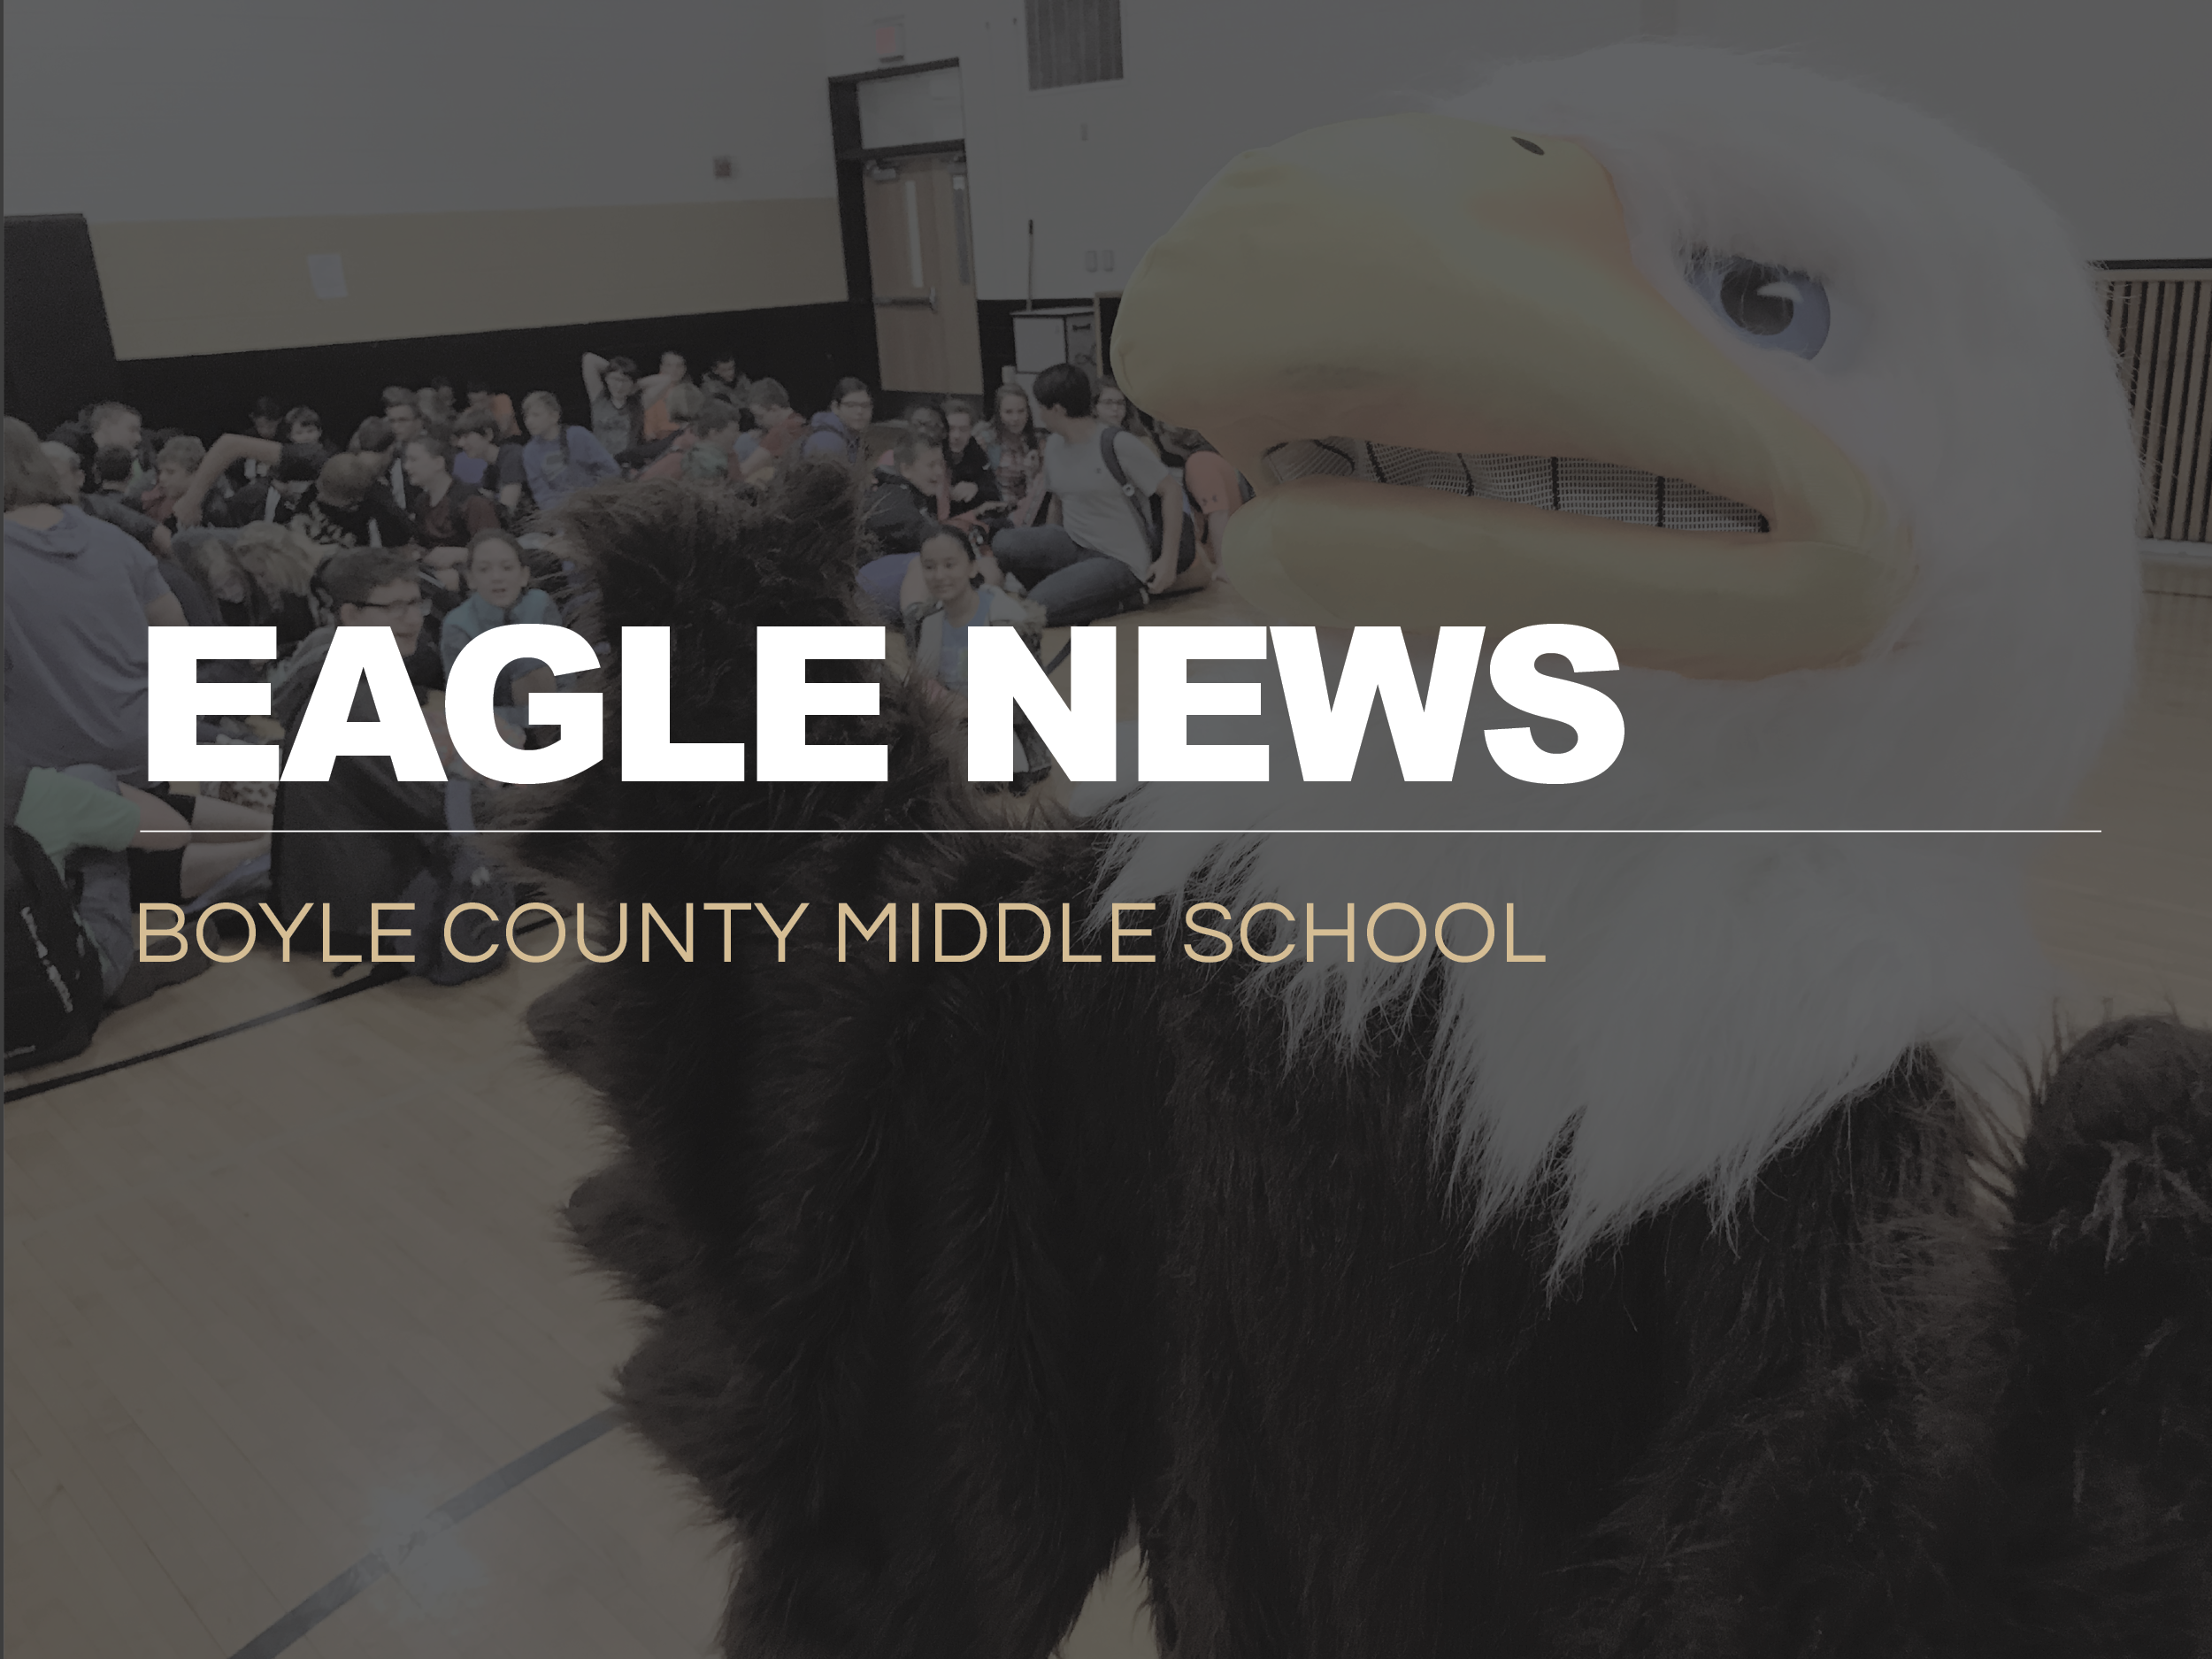 Boyle Middle News